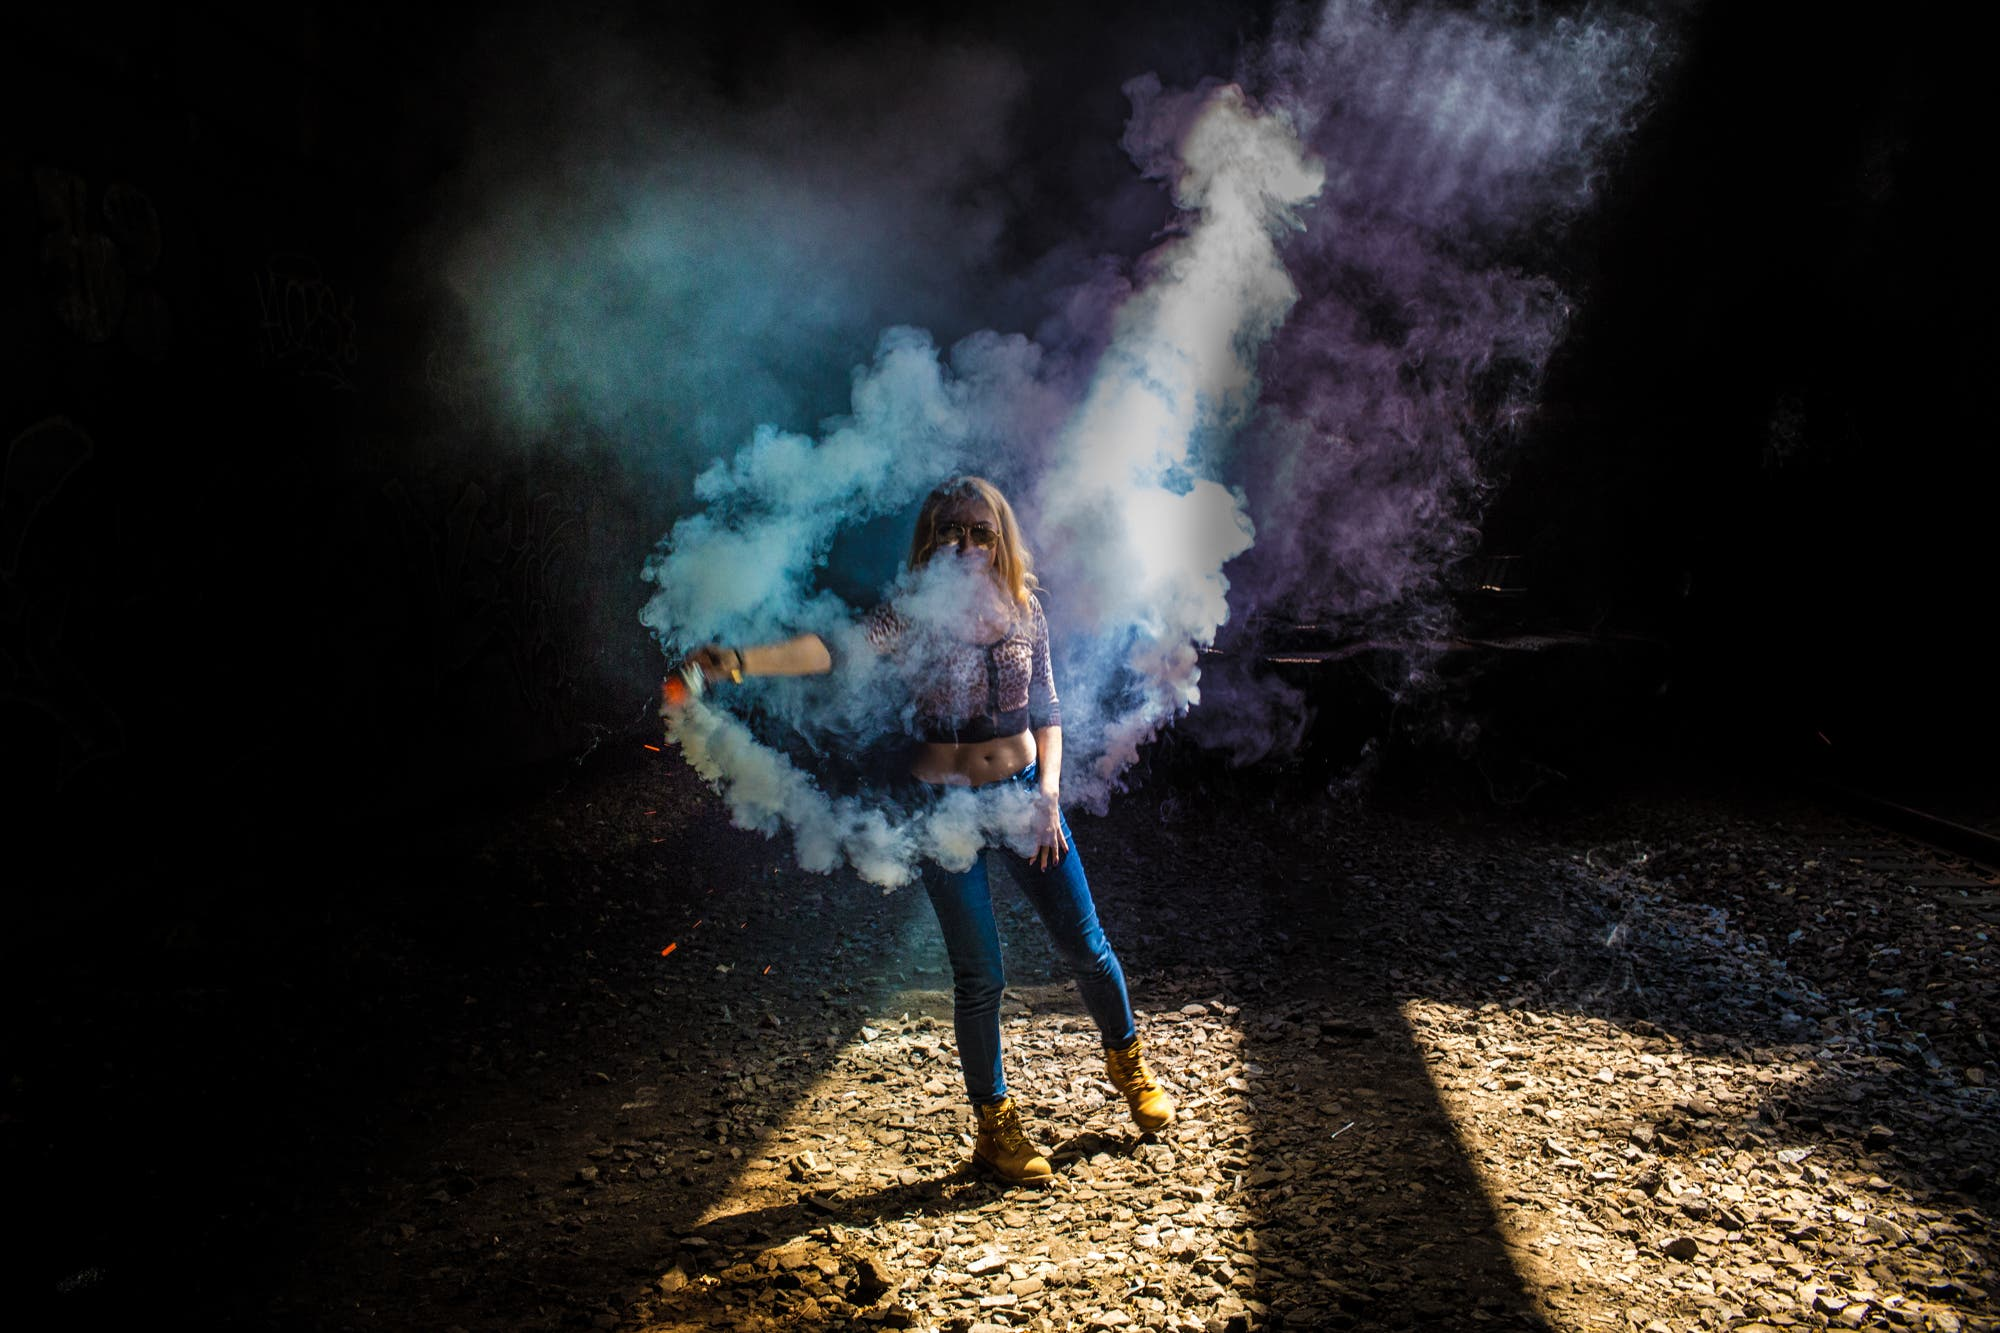 shooting dancers and colored smoke bombs under nyc